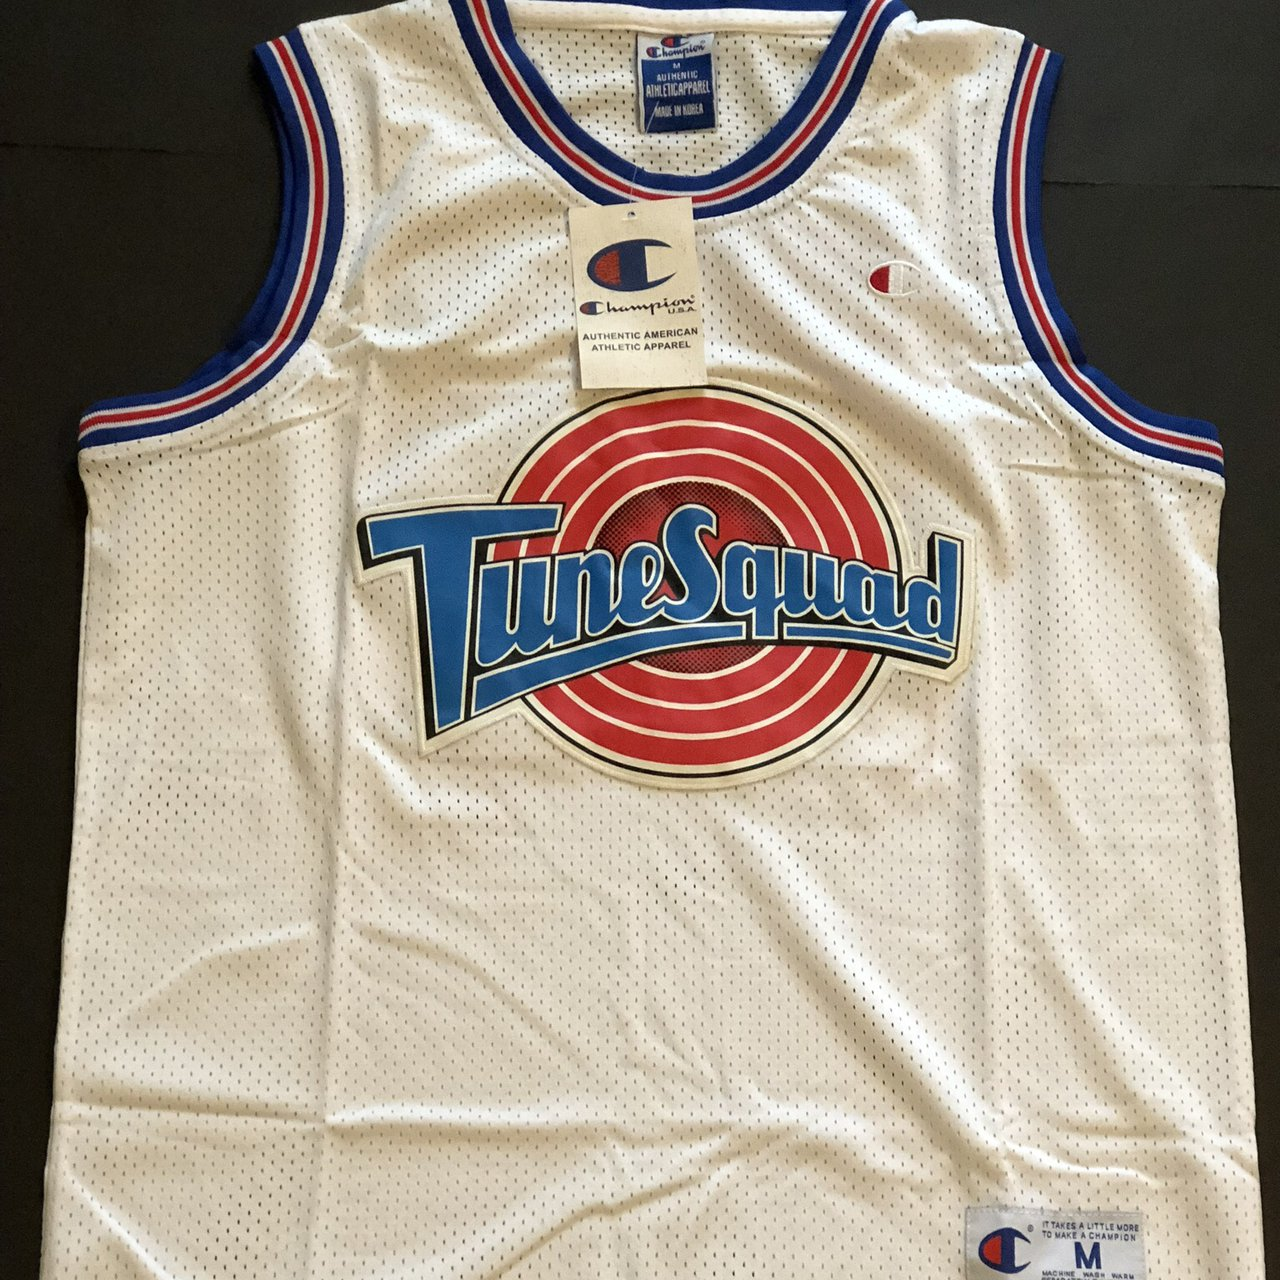 """79c5a1c4e05 @throwedthreads. last year. Dallas, United States. A brand new Michael  Jordan jersey. Tune Squad from the movie """"Space Jam"""". Stitched and authentic ."""